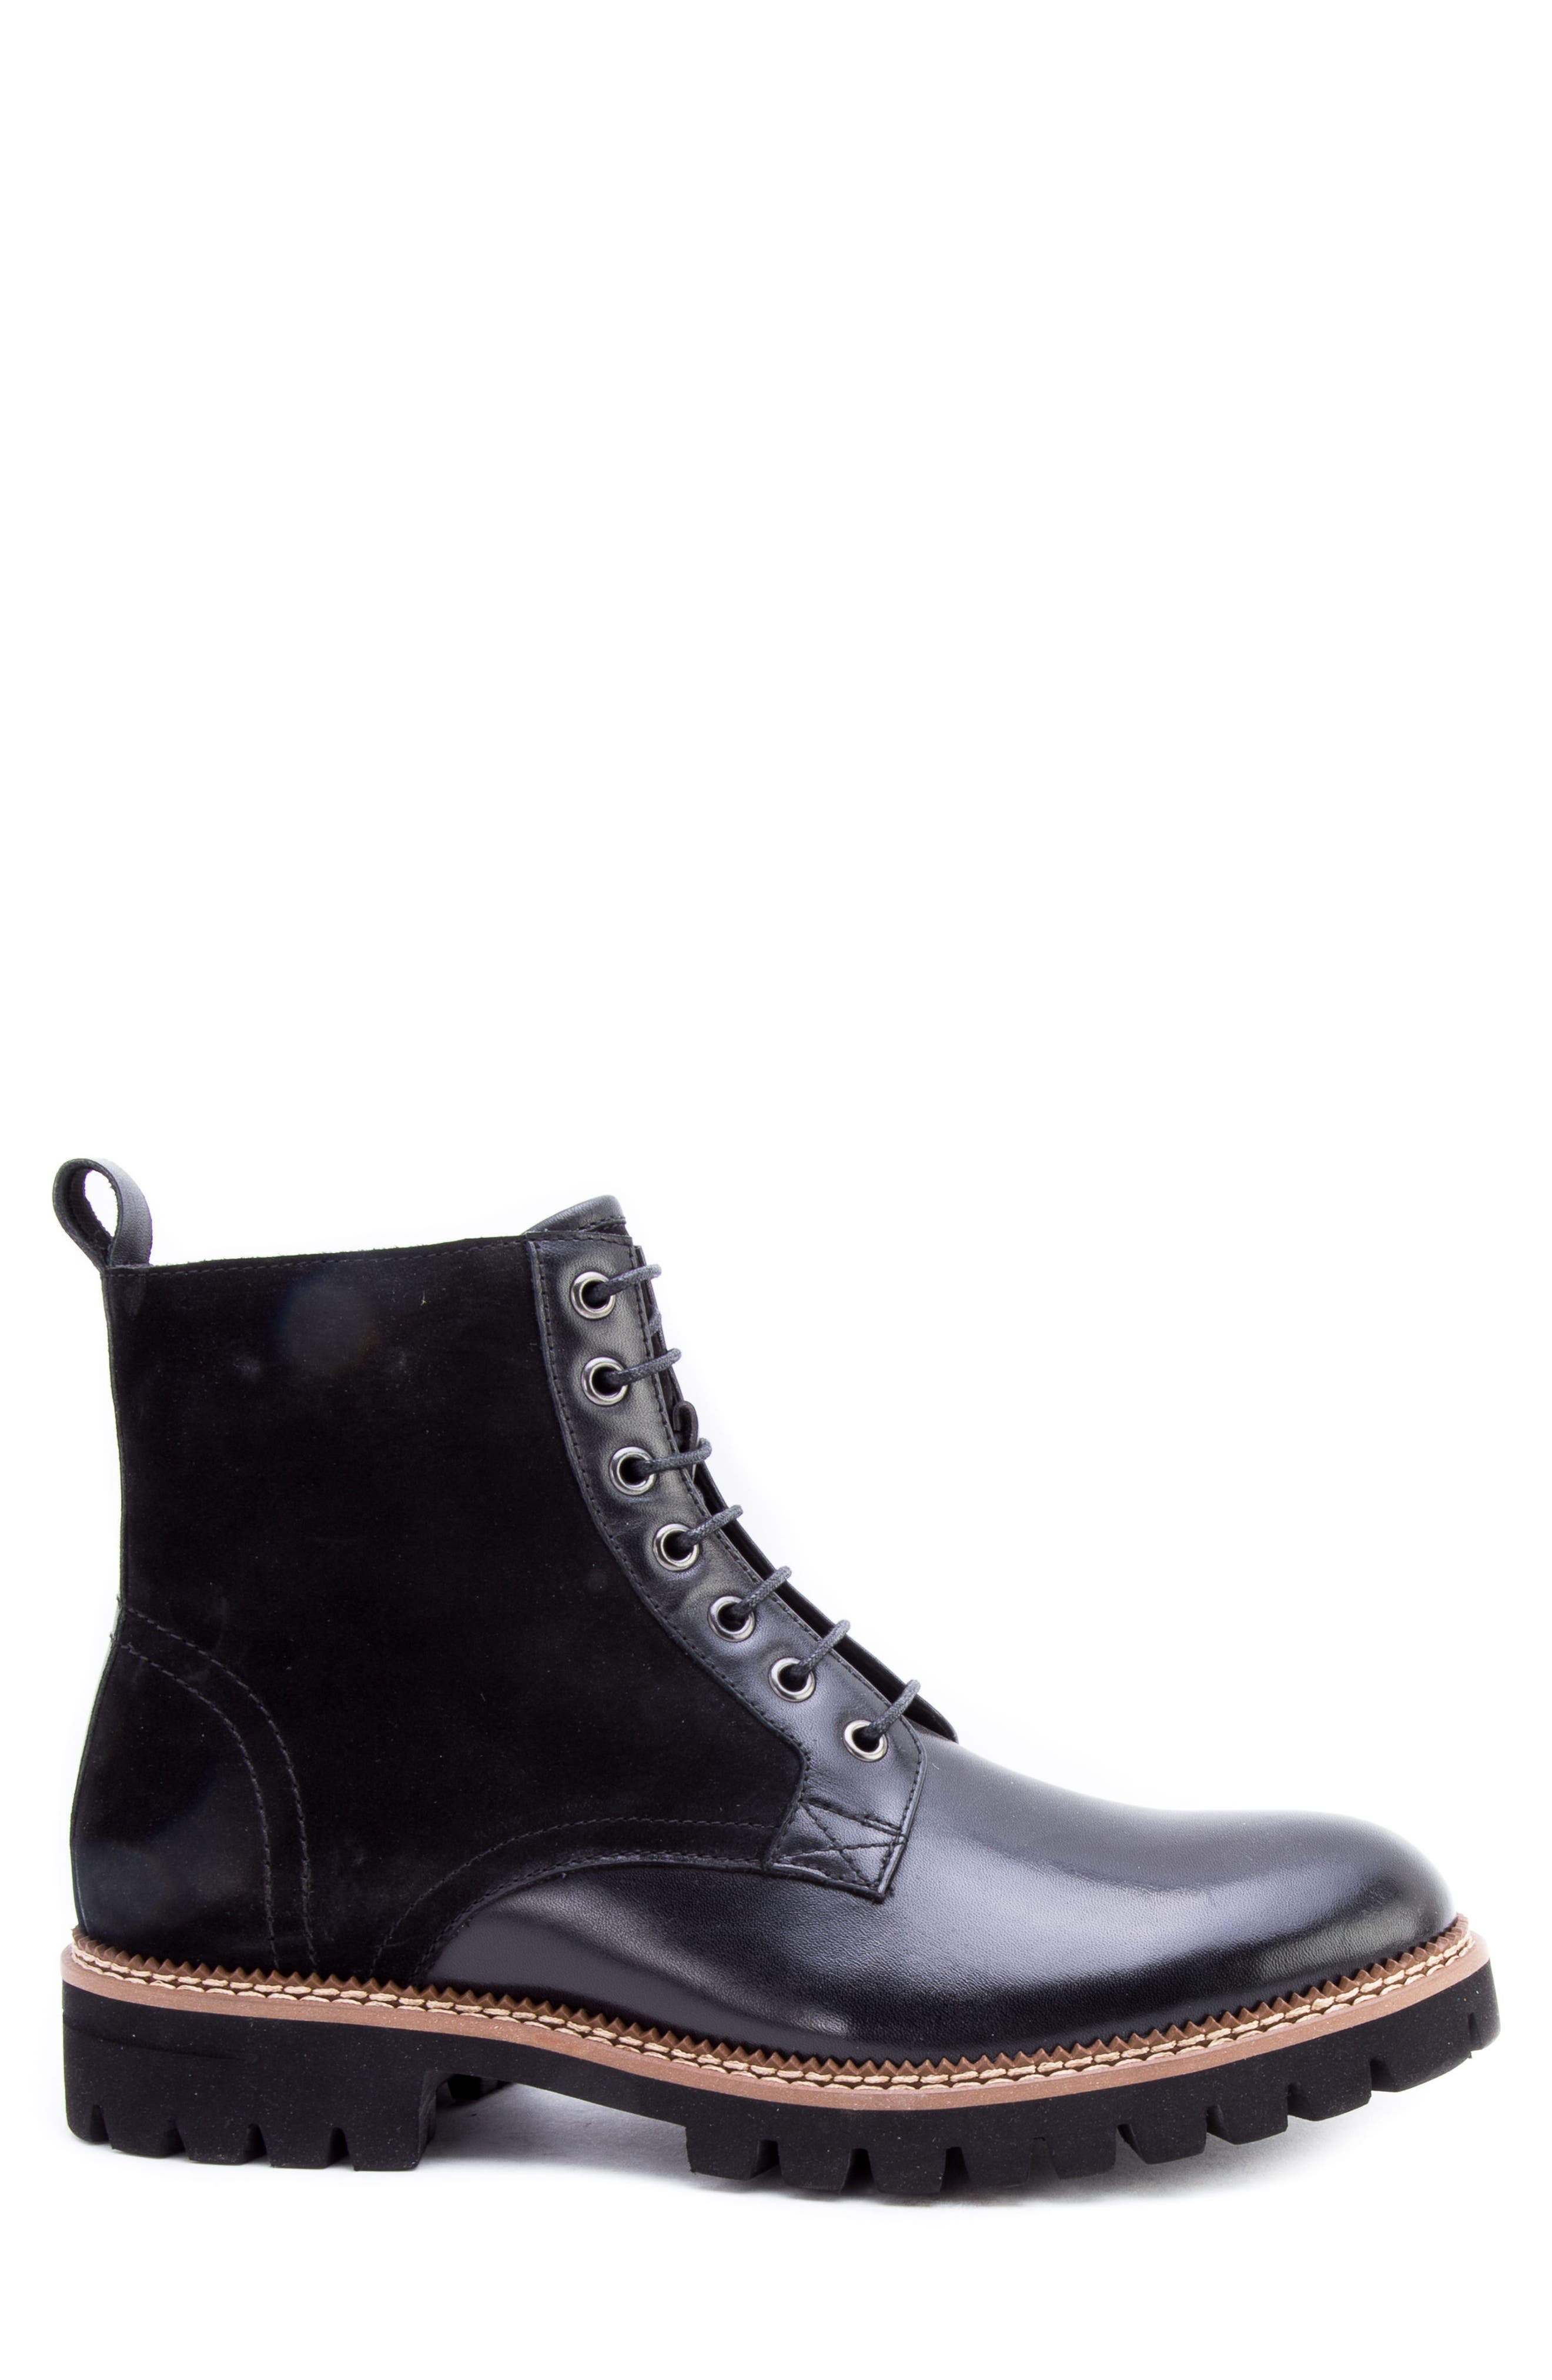 Millet Water Resistant Lugged Boot,                             Alternate thumbnail 3, color,                             001